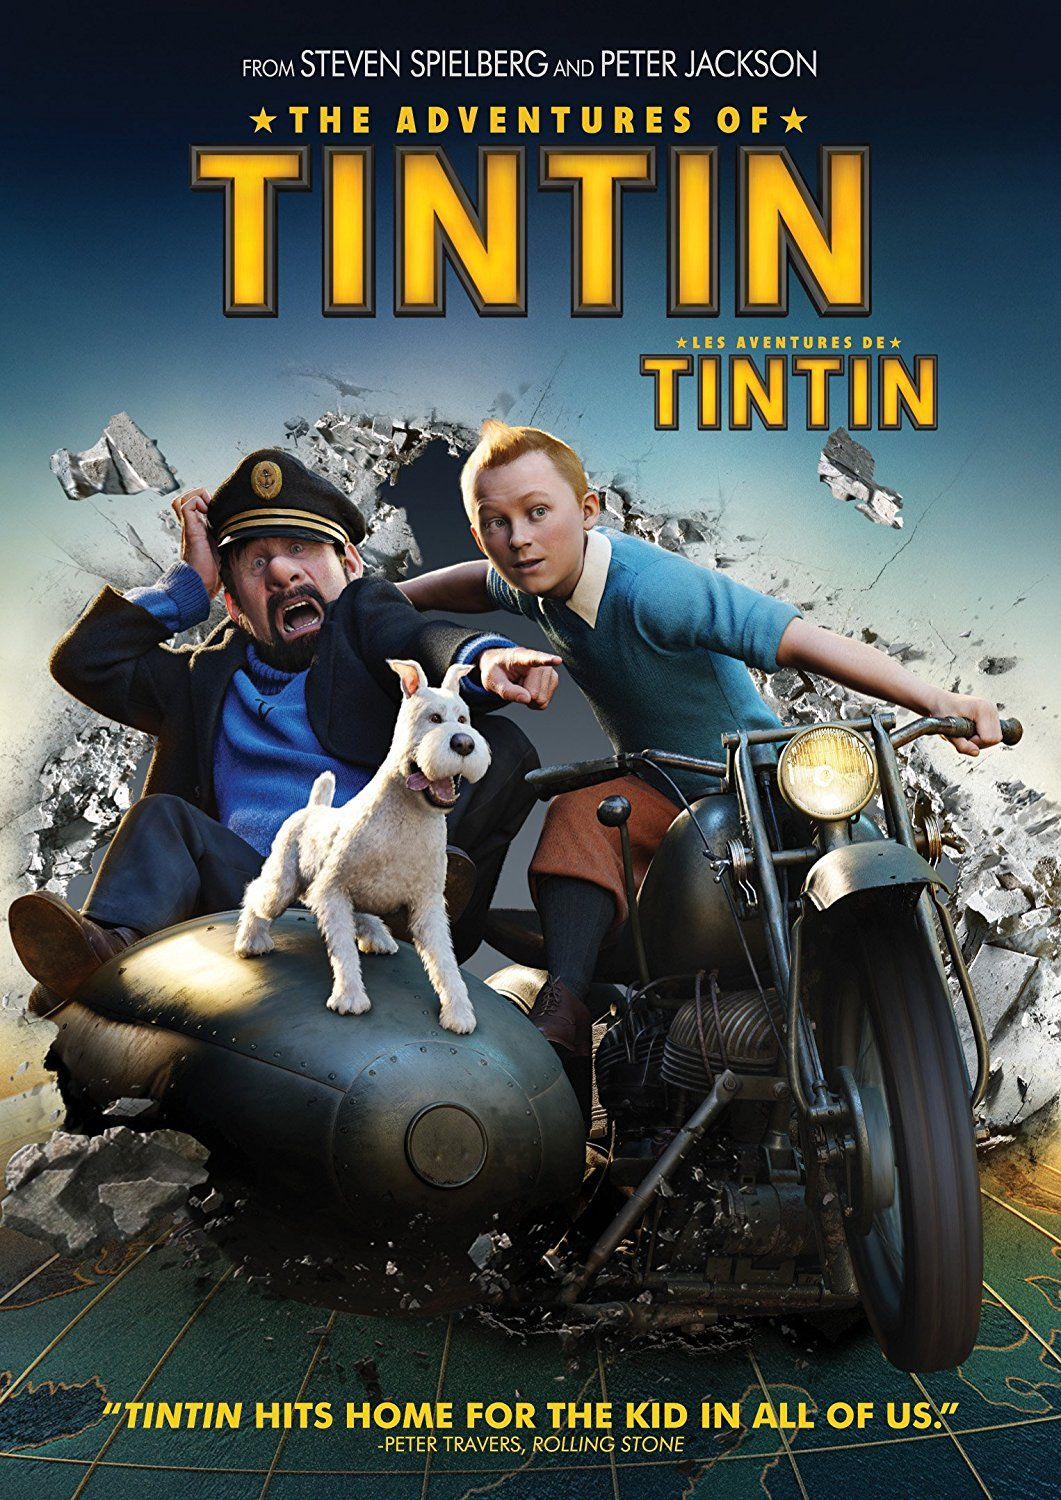 TenTen'in Maceraları – The Adventures Of Tintin 94